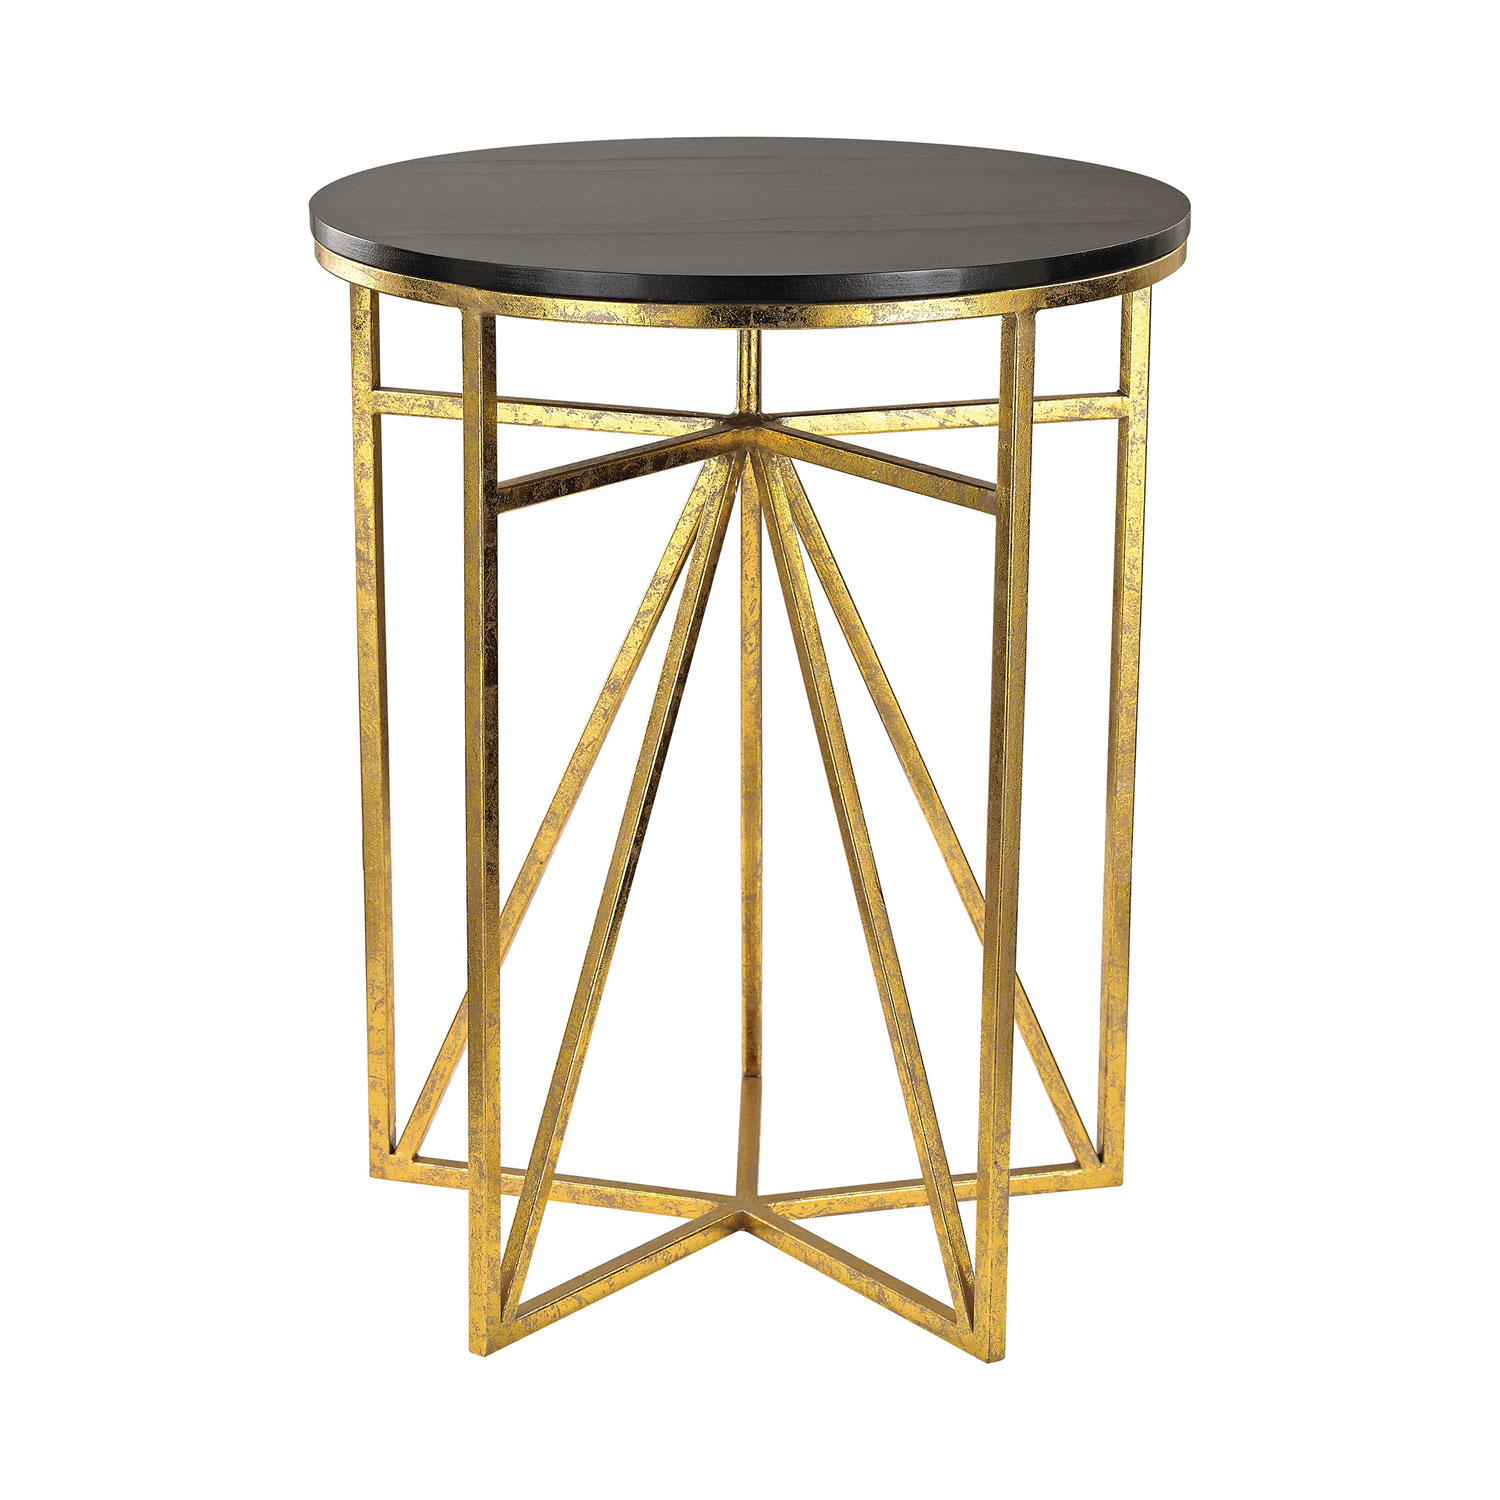 sterling industries gold and dark espresso geometric accent table height chairs side inches high cream metal ikea white bedside wooden storage crates cool round tablecloths